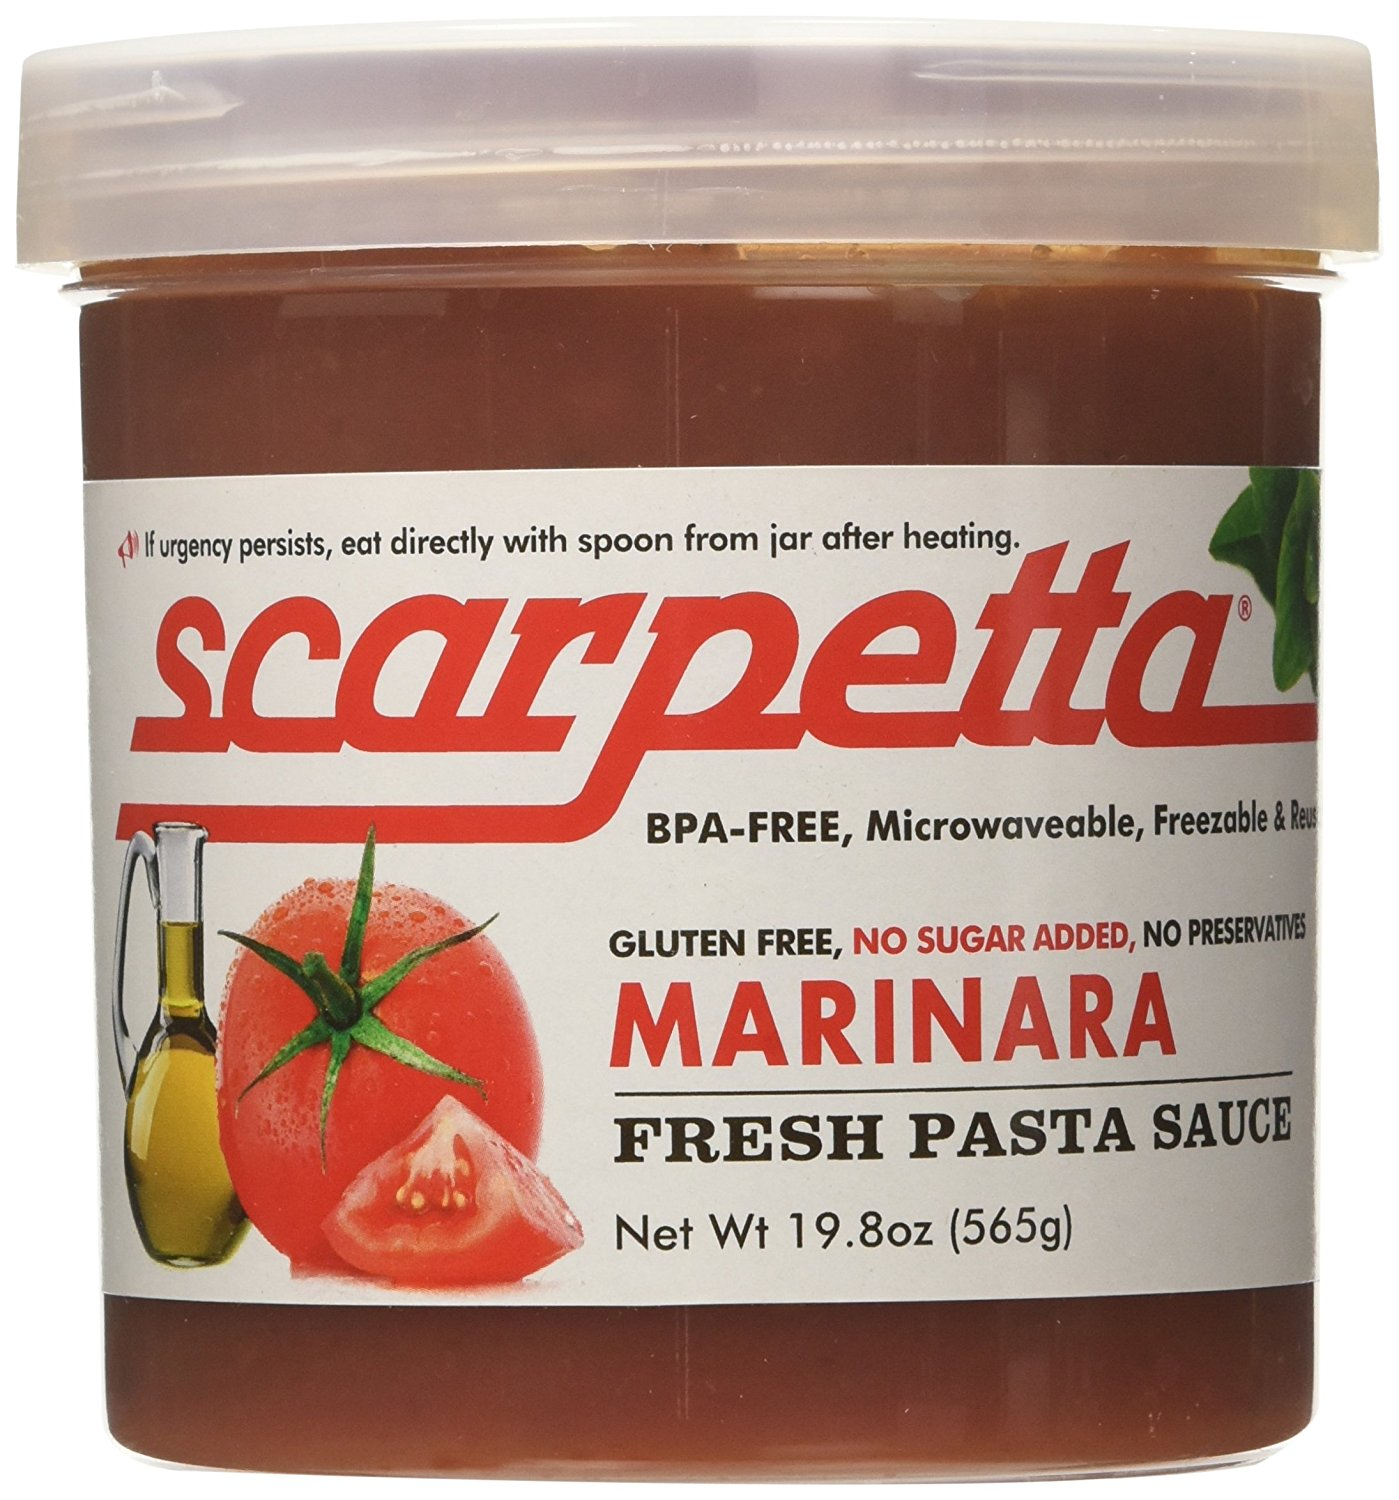 Low carb marinara - low carb diet foods, 7 essential sugar free sauces, sugar free condiments. 4 Low carb diet foods.